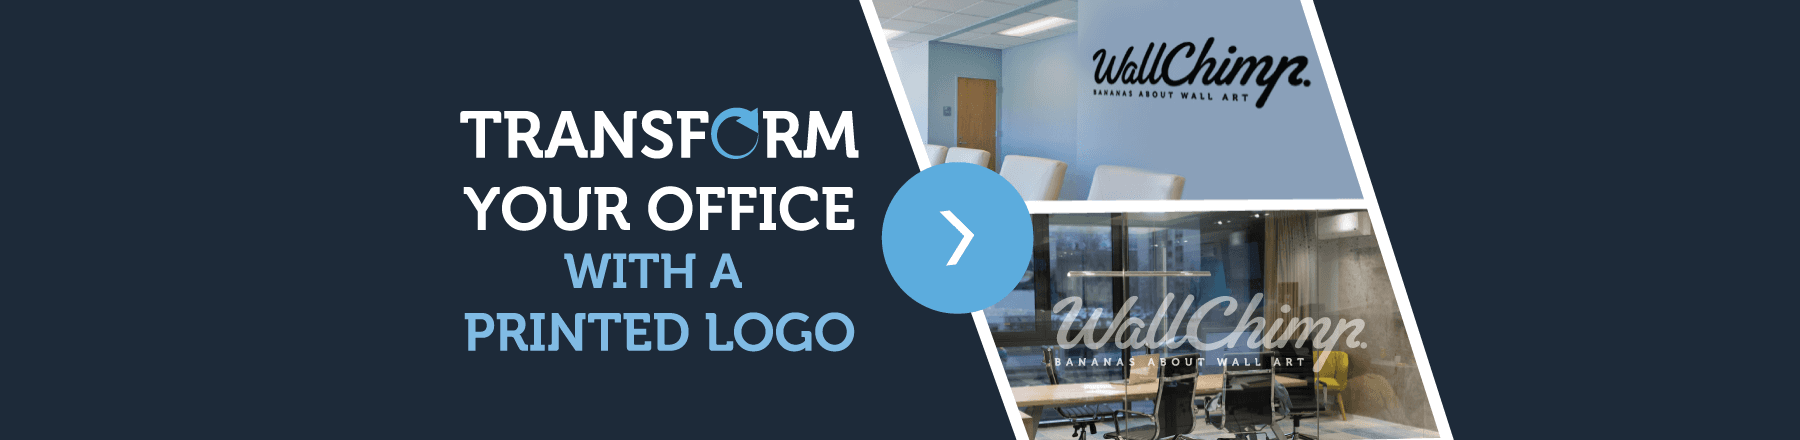 Transform Your Office